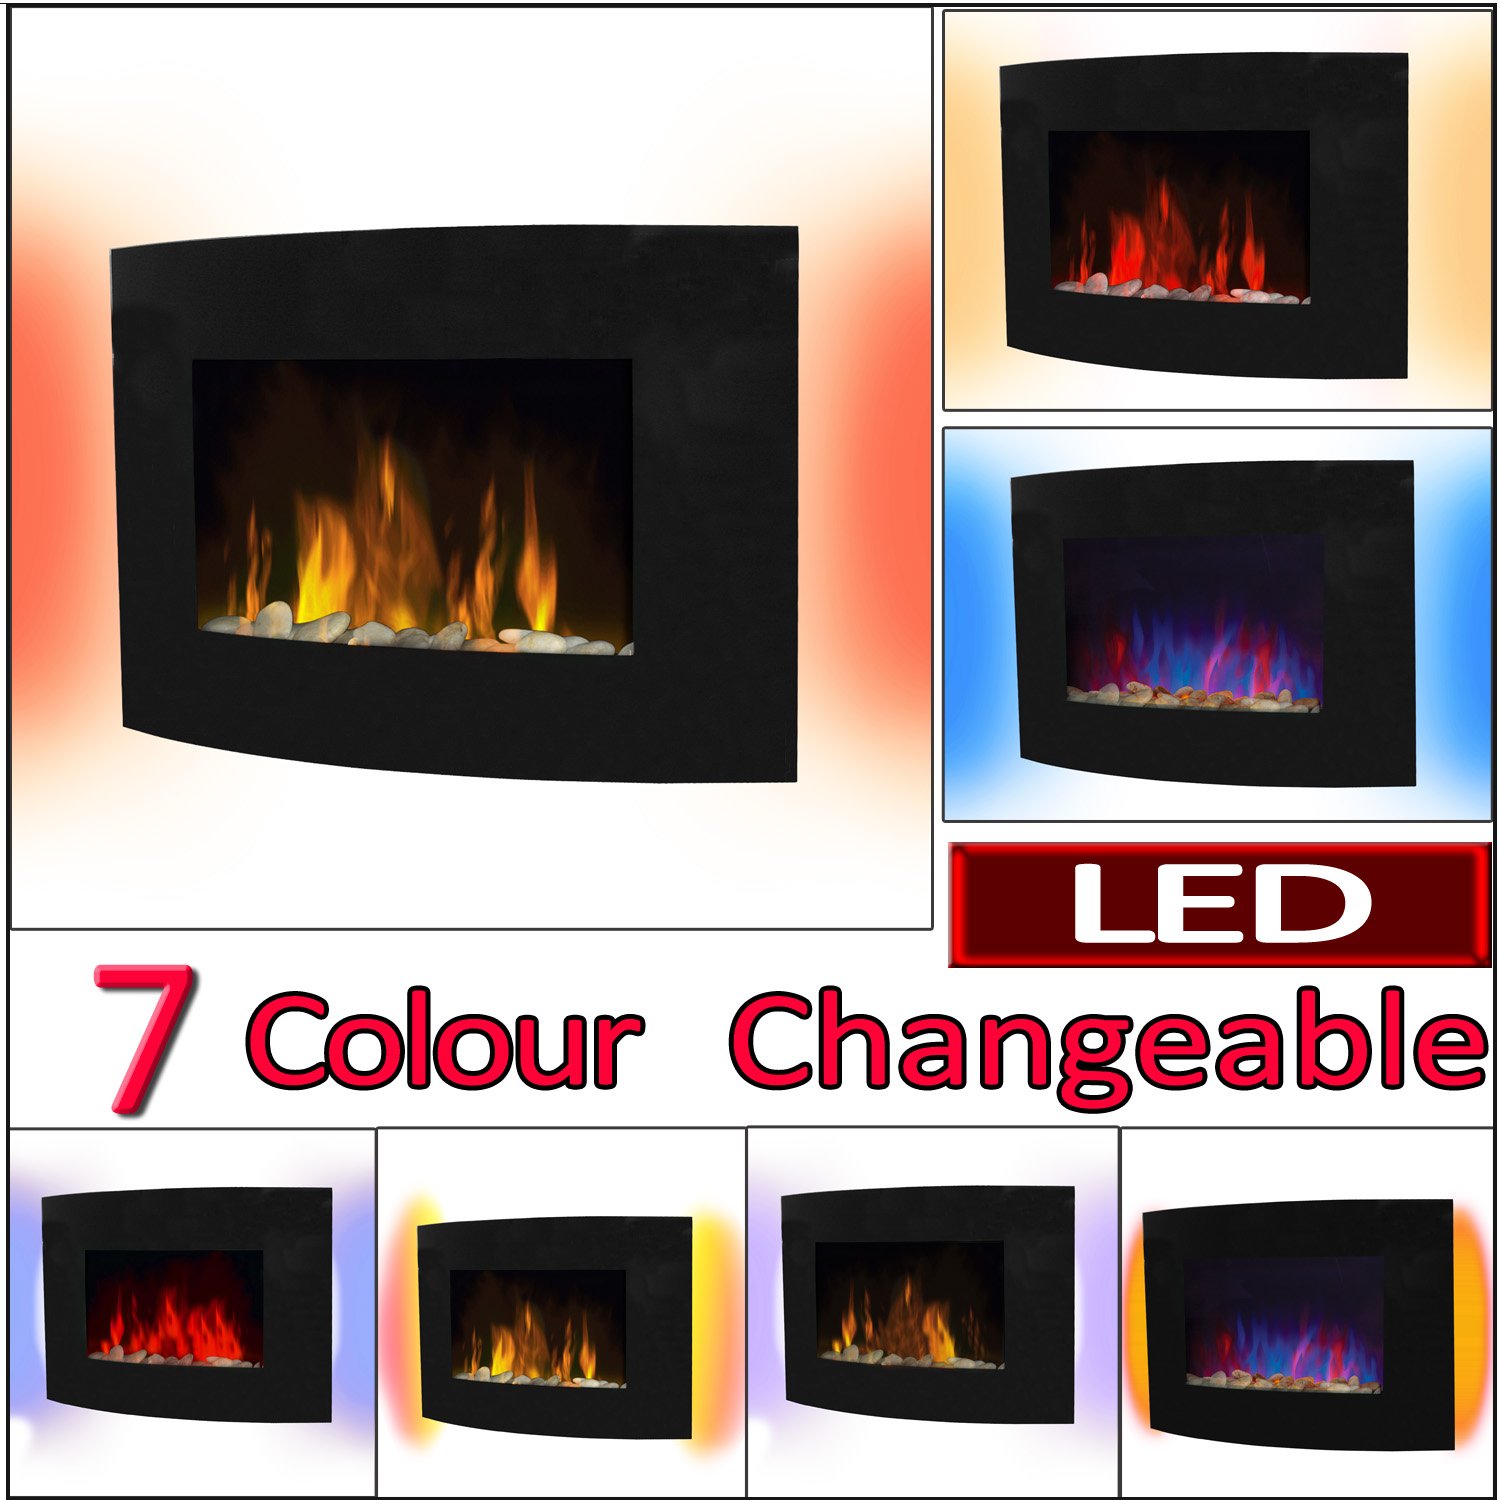 2kw Curved Glass 7 Colour Led Backlit Electric Fireplace